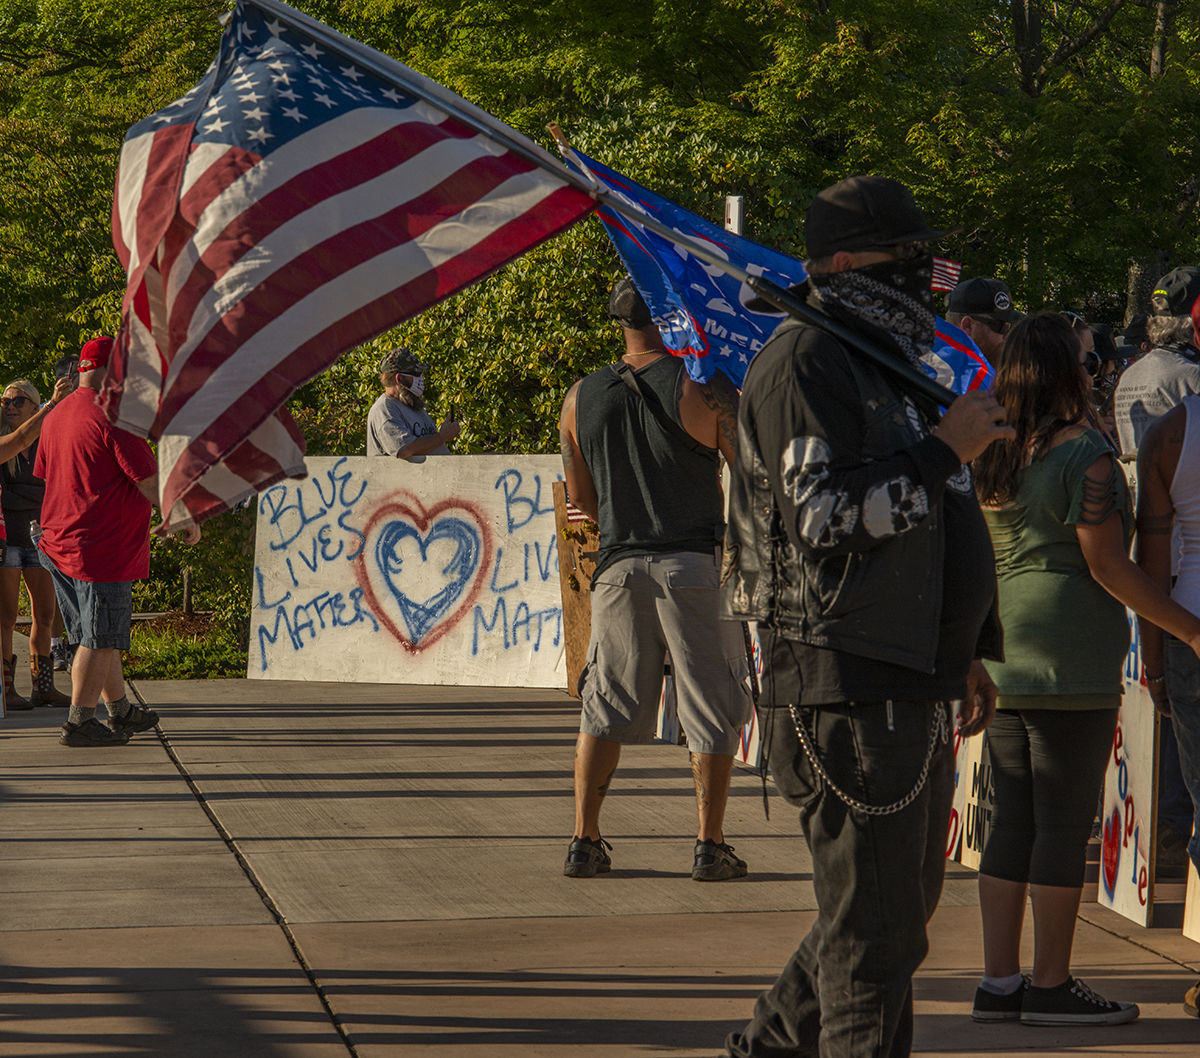 About 250 people gathered at the Springfield, Oregon, library for what was billed as an All Lives Matter rally Friday at 7 p.m. About a dozen counter protesters also attended. The event was mostly peaceful, although a couple of minor scuffles broke out and one man was taken into custody by the Springfield police. By 9:30 p.m. both the protesters and the counter protesters dispersed. Photo by Jeremy Williams